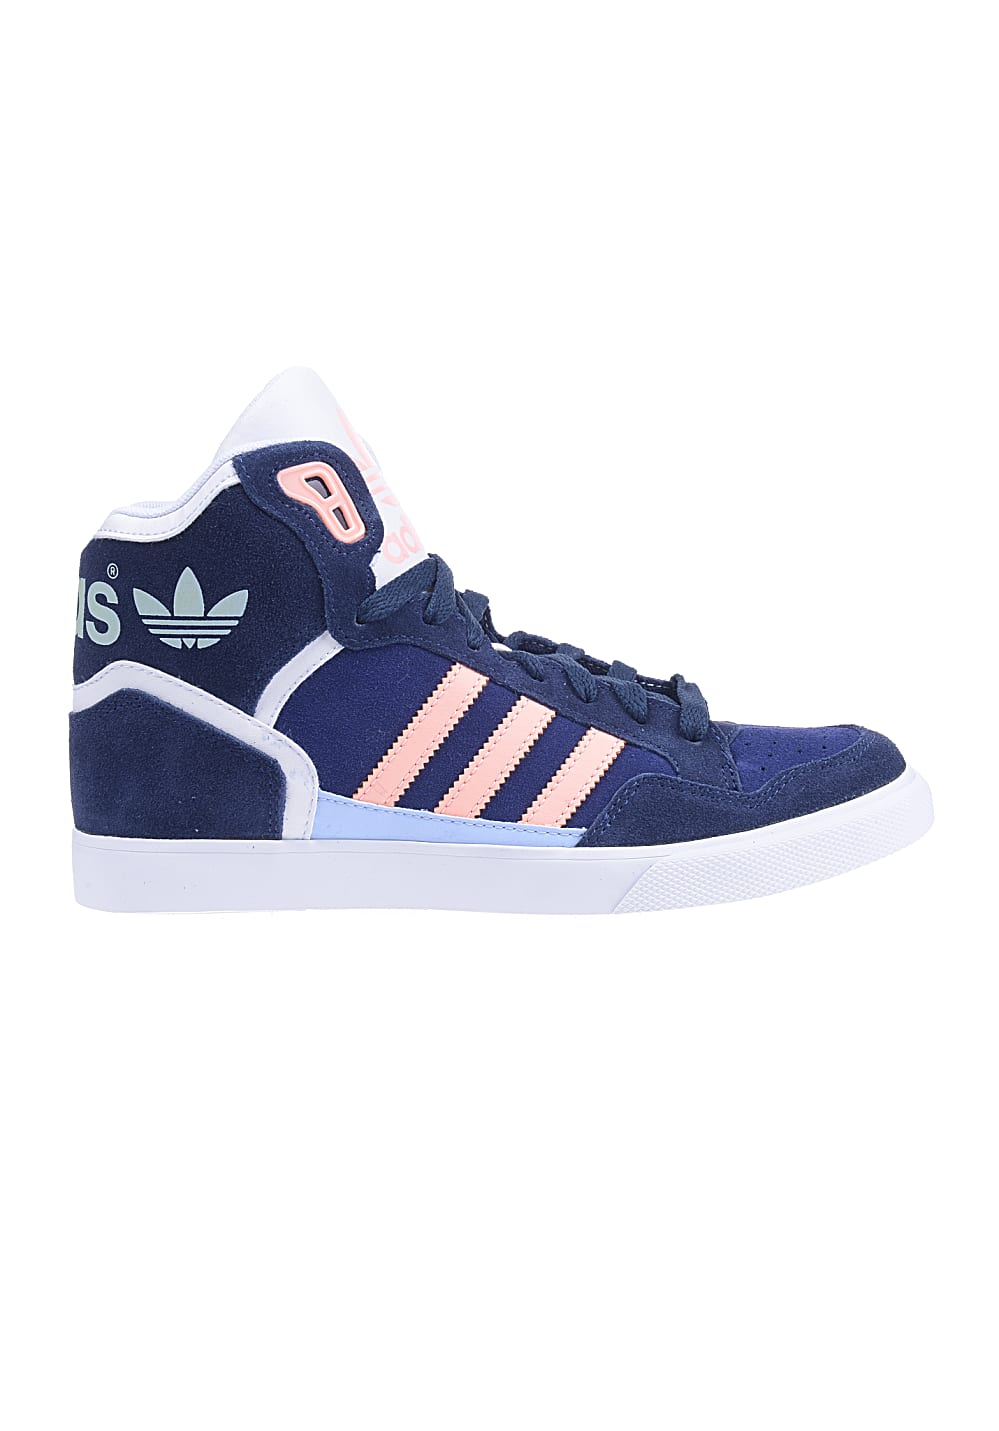 adidas extaball sneaker f r damen blau planet sports. Black Bedroom Furniture Sets. Home Design Ideas